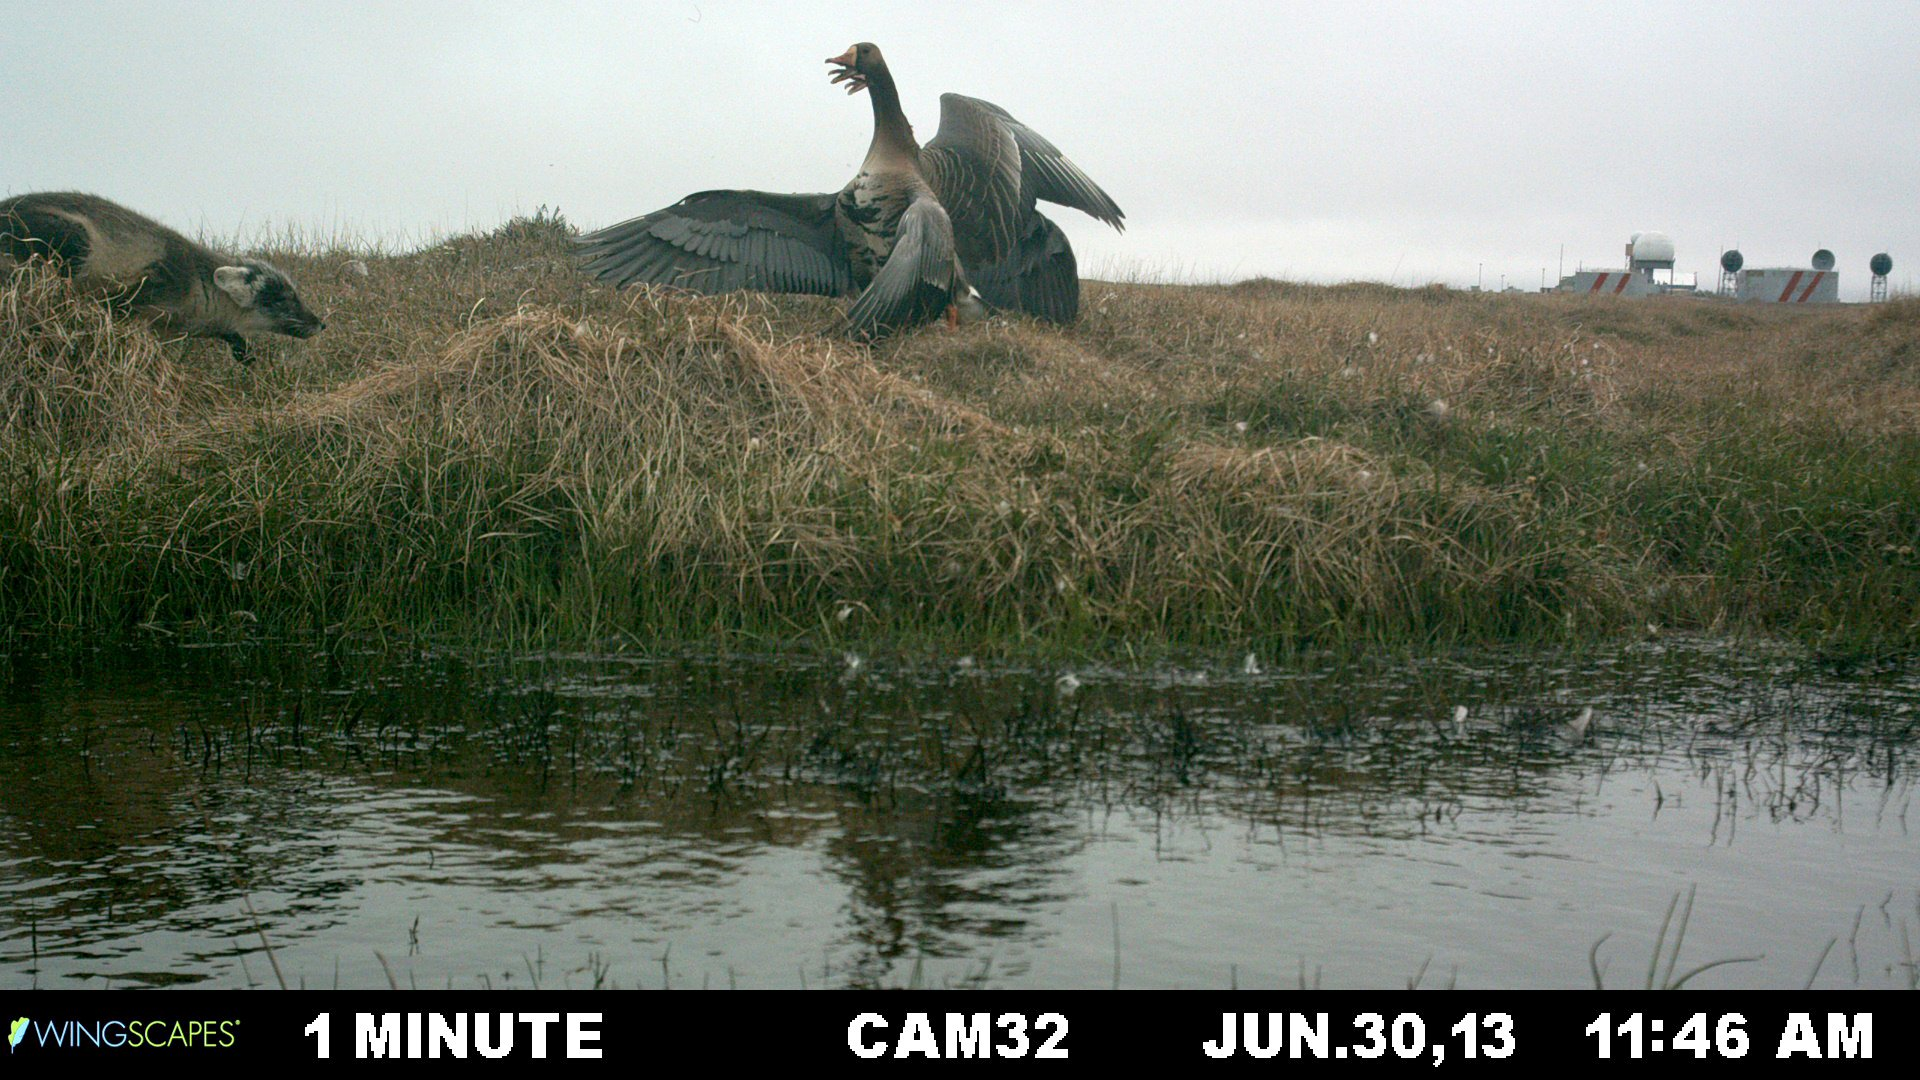 Geese at Lonely Point/Camp Lonely were documented automatically by installed cameras over 2013-14. Their nesting behaviors and interactions with other animals were captured. Fox received a big defensive reaction. (Brandt Meixell / USGS)